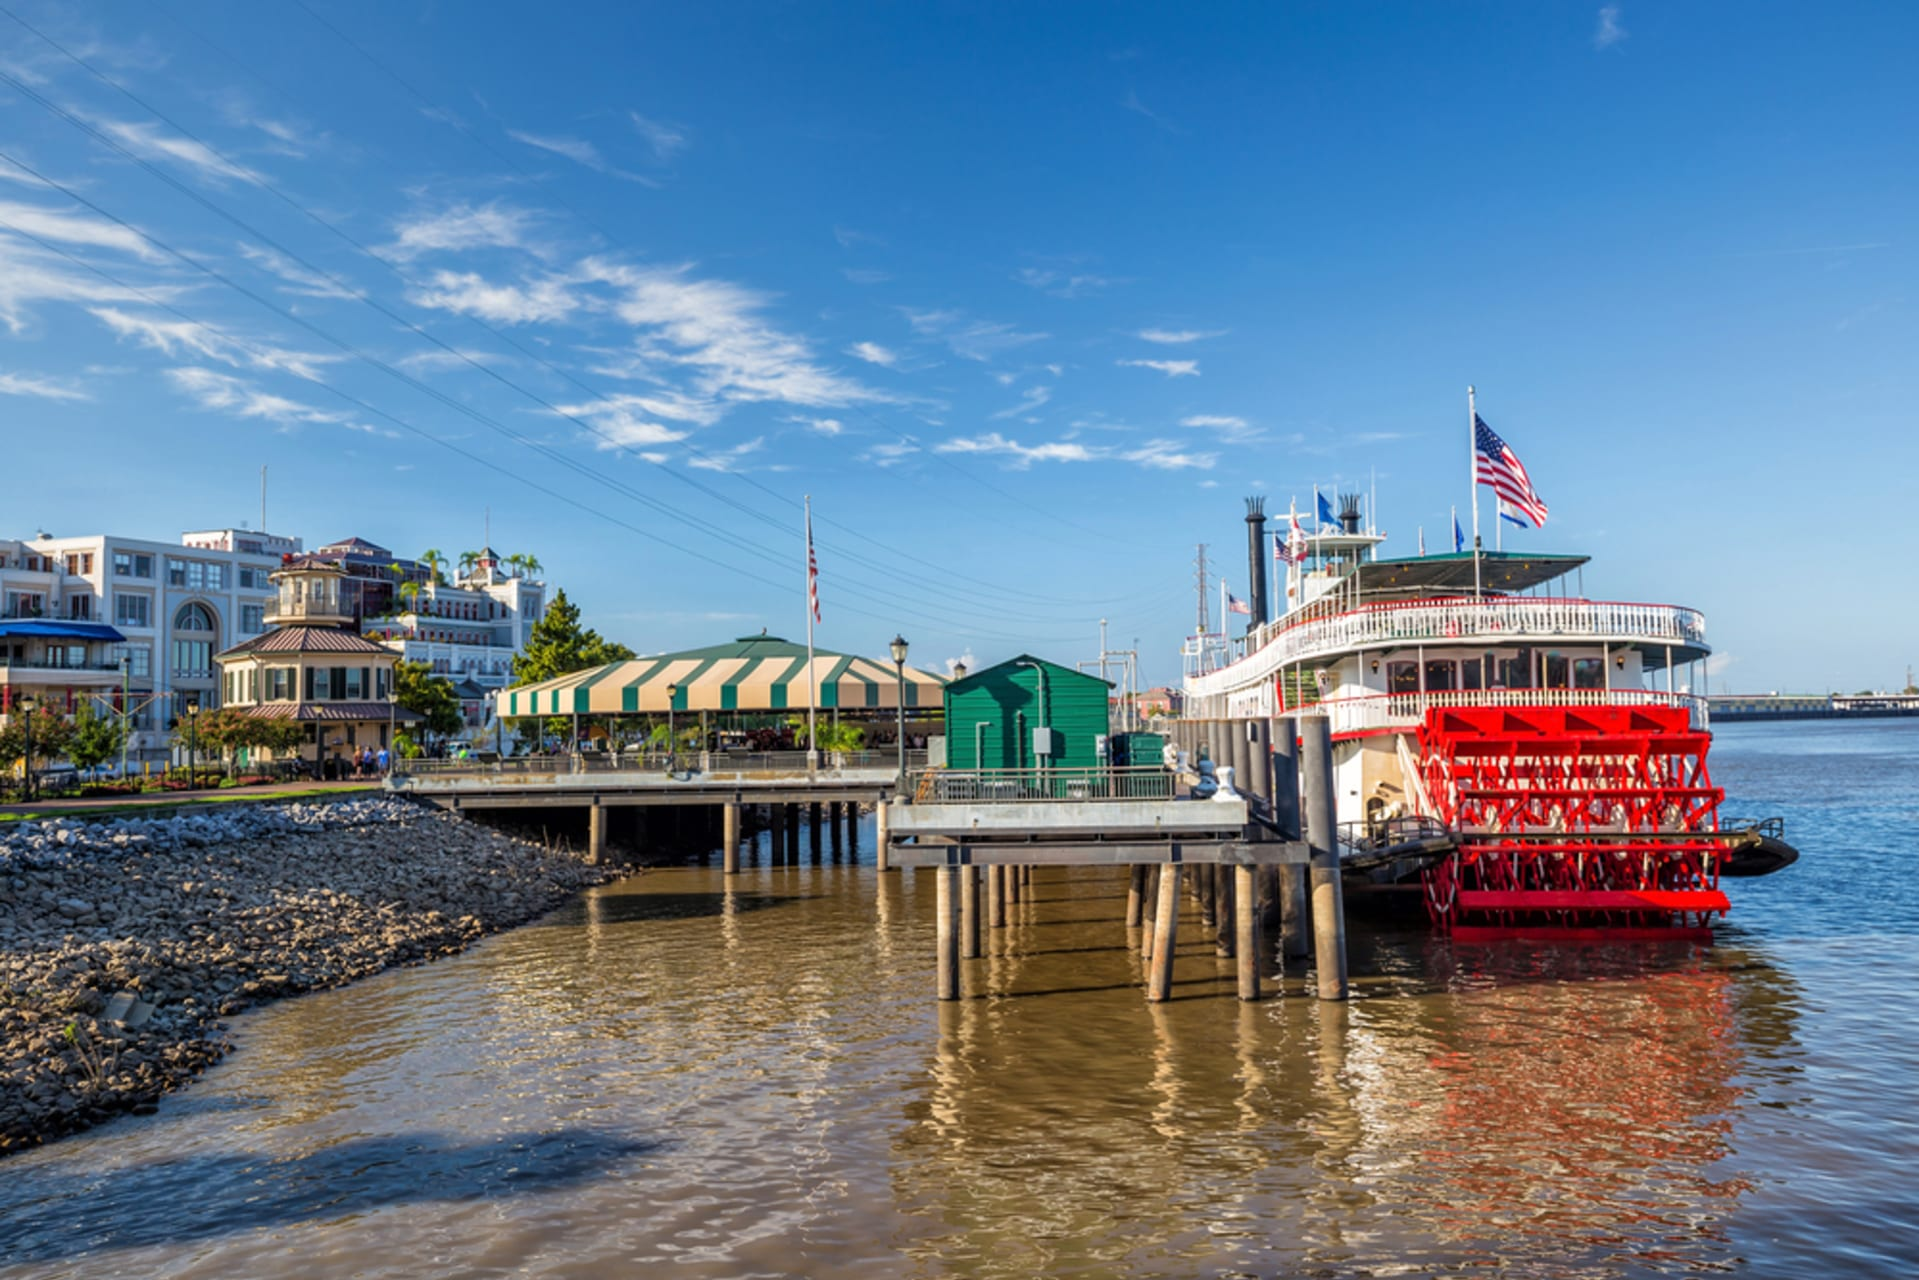 New Orleans - Strolling Along The Mississippi River: How a swamp was turned into a destination